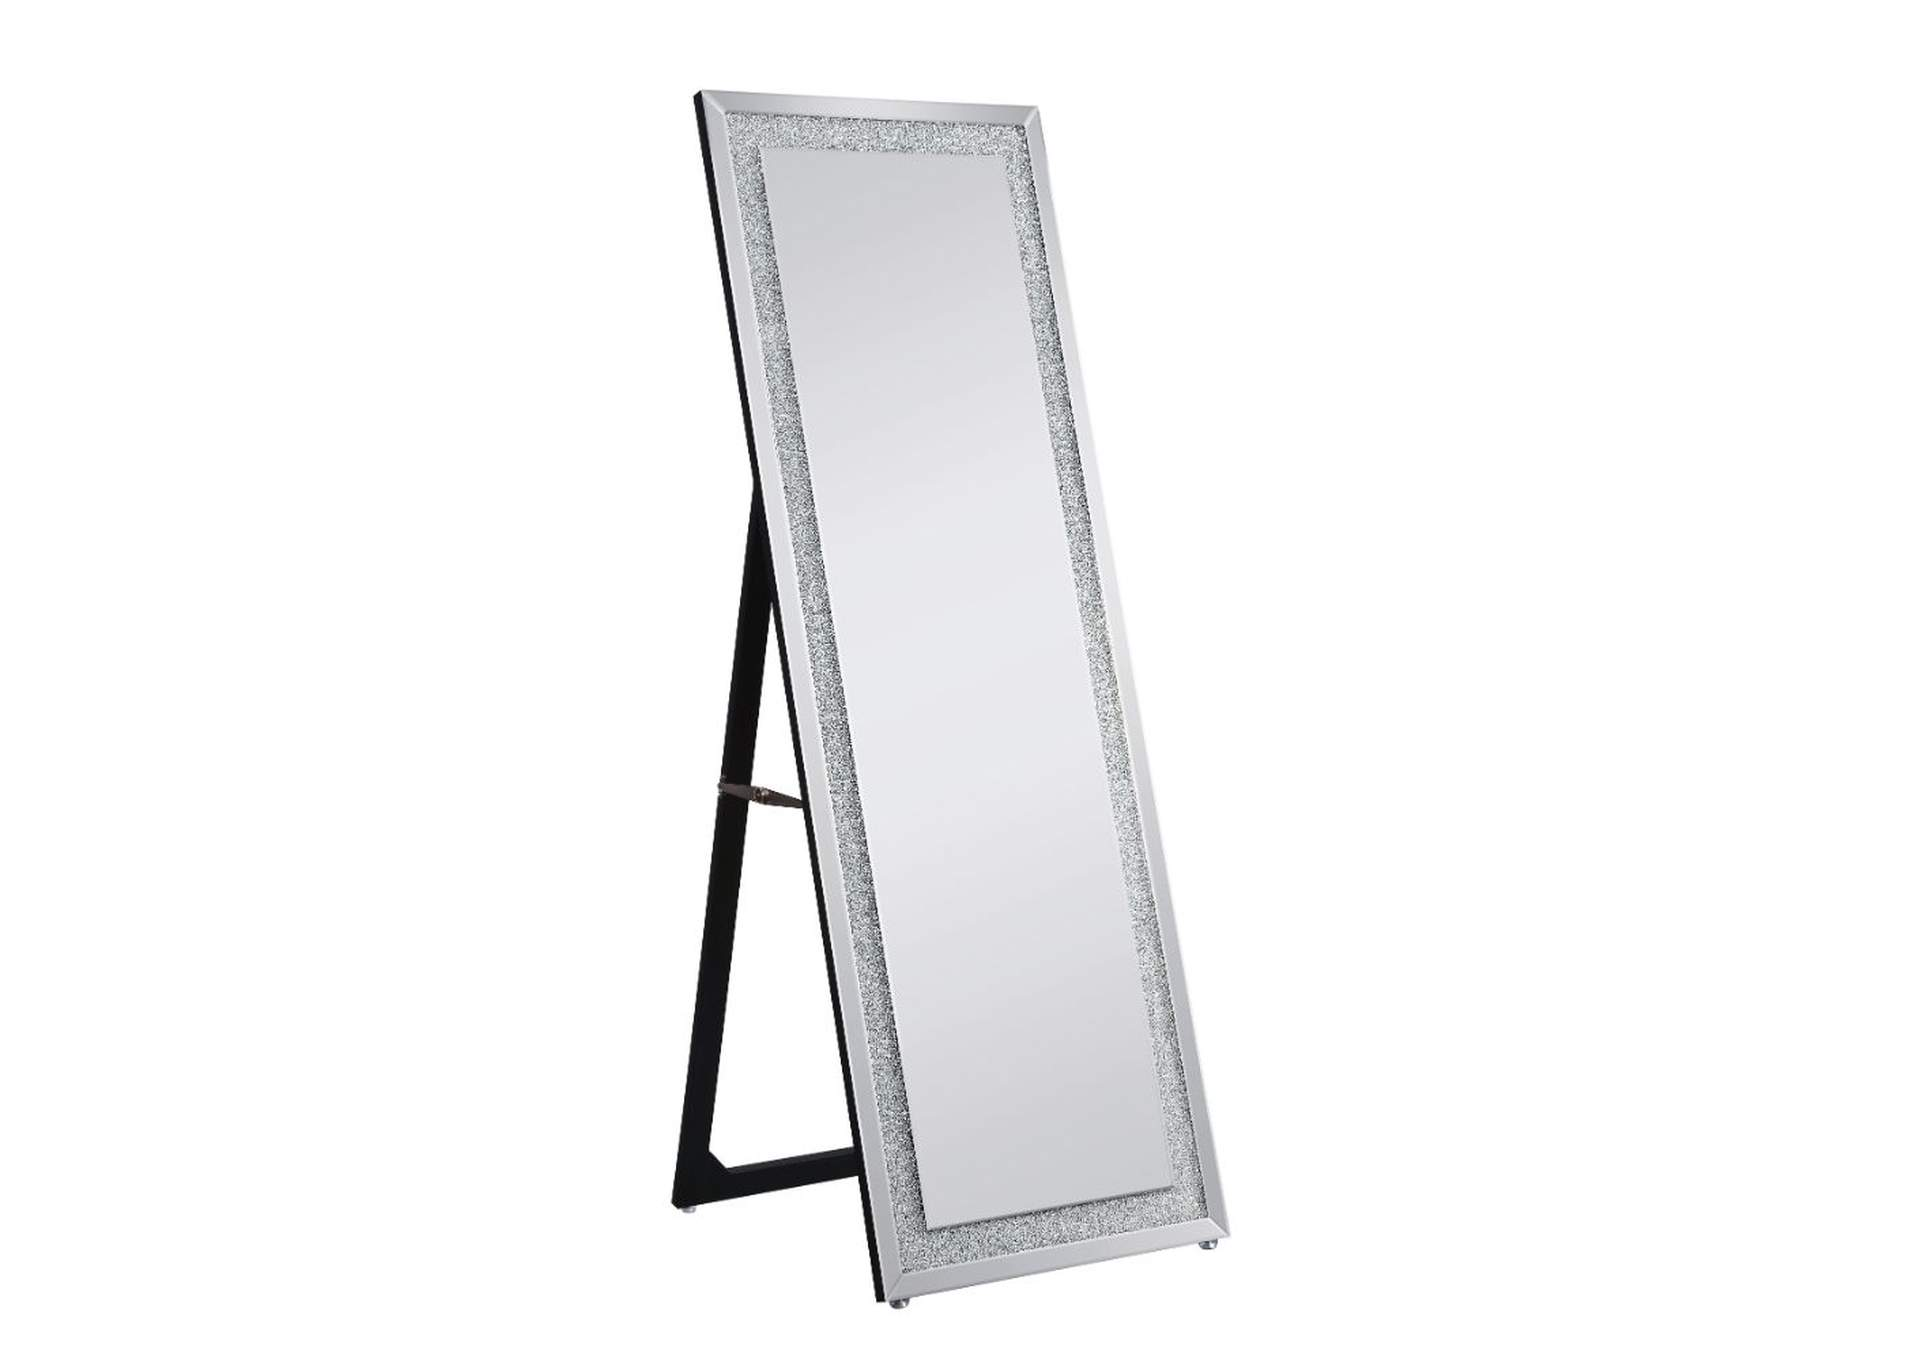 Nowles Mirrored & Faux Stones Accent Mirror,Acme